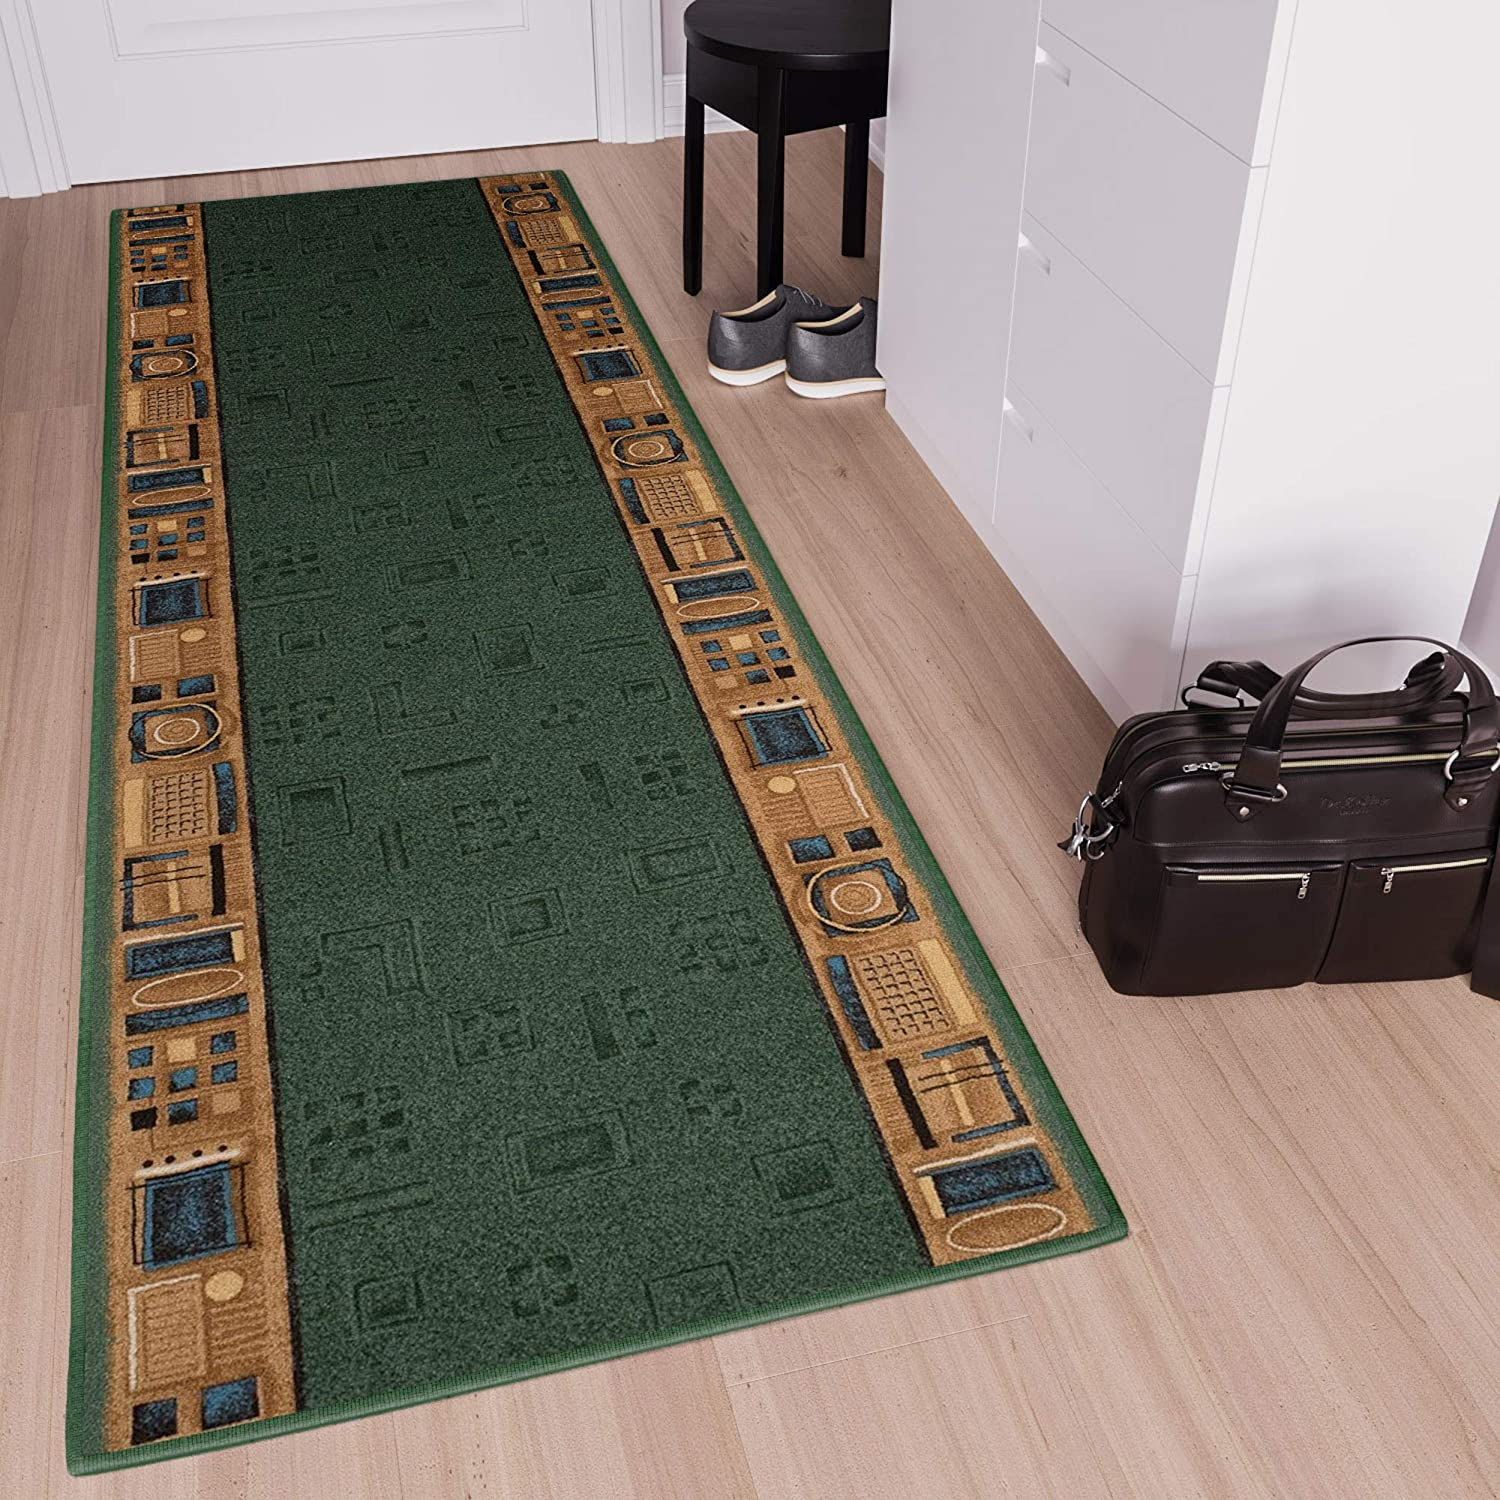 67 x 10 cm Tapiso Anti Slip Hall Stairs Hotel Runner Modern Green Abstract Rubber Backing Durable Carpet Size 2ft2 x 4